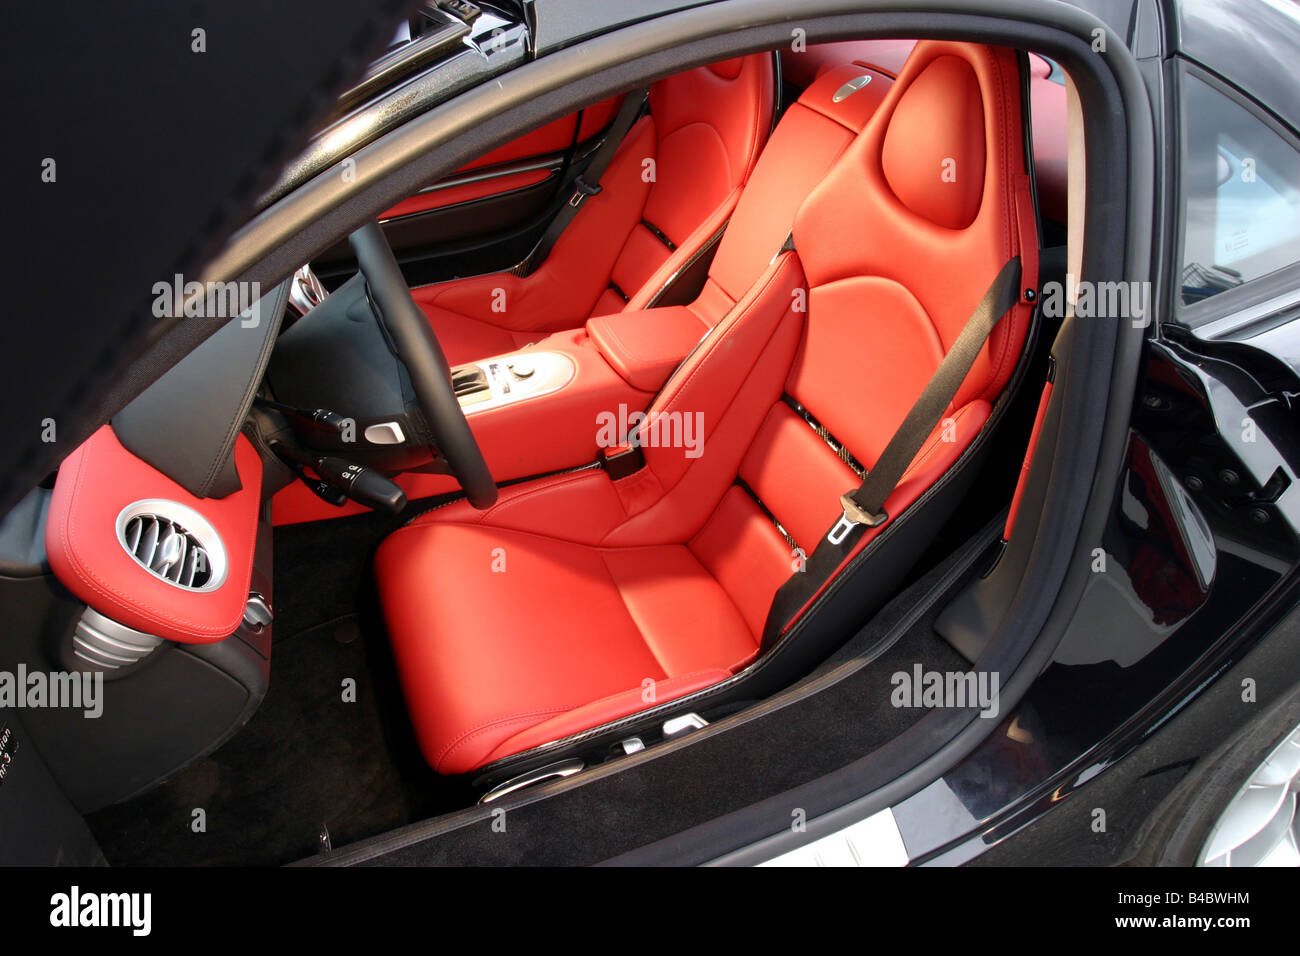 car, mercedes slr mclaren, coupe/coupe, roadster, model year 2003